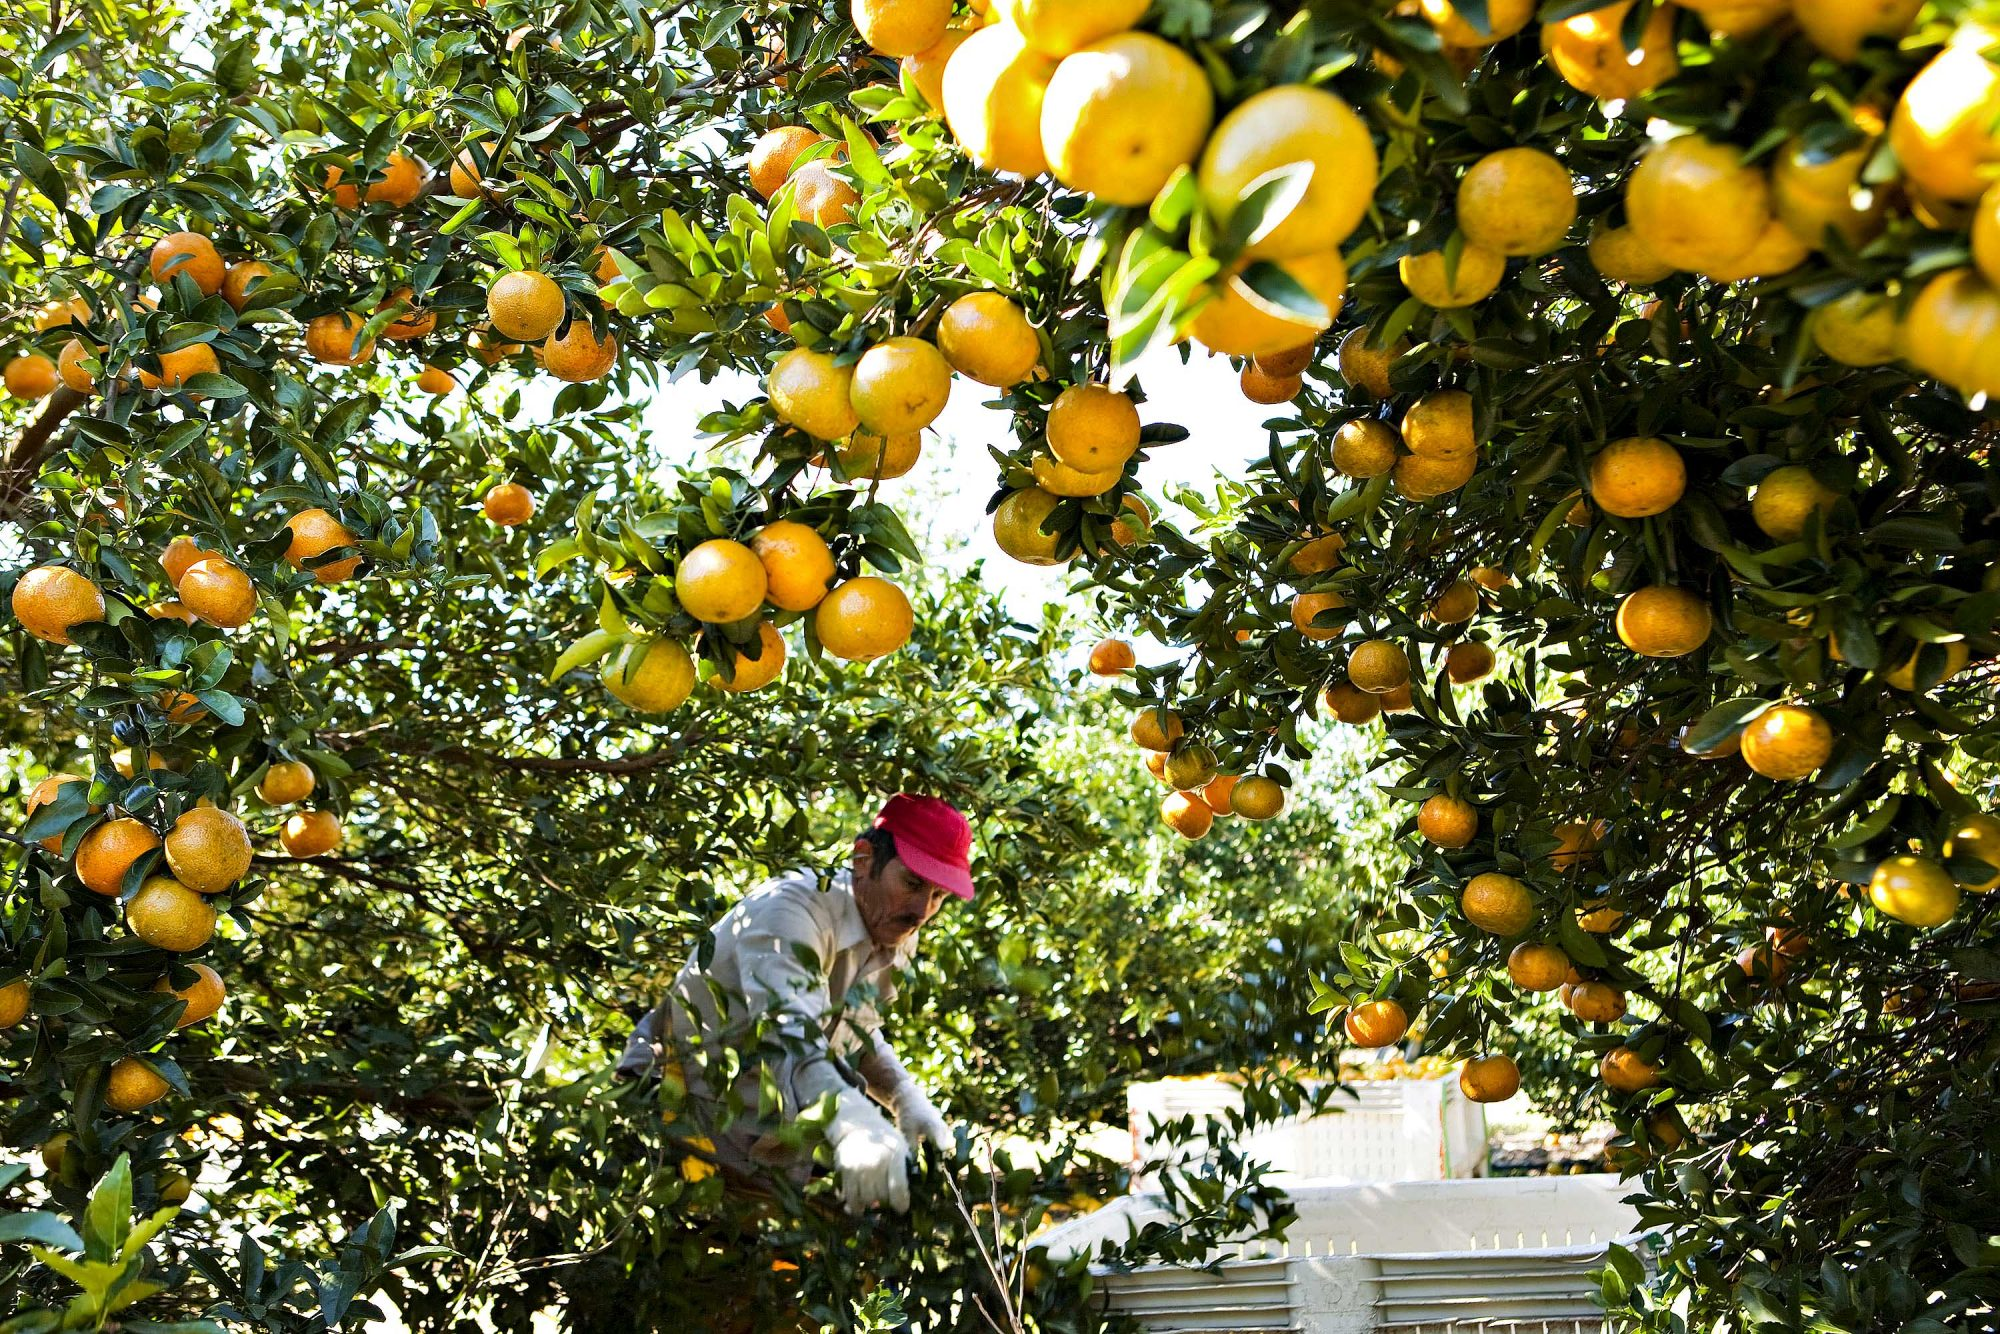 Orange Juice Futures Gain As Weather May Damage Citrus Crops